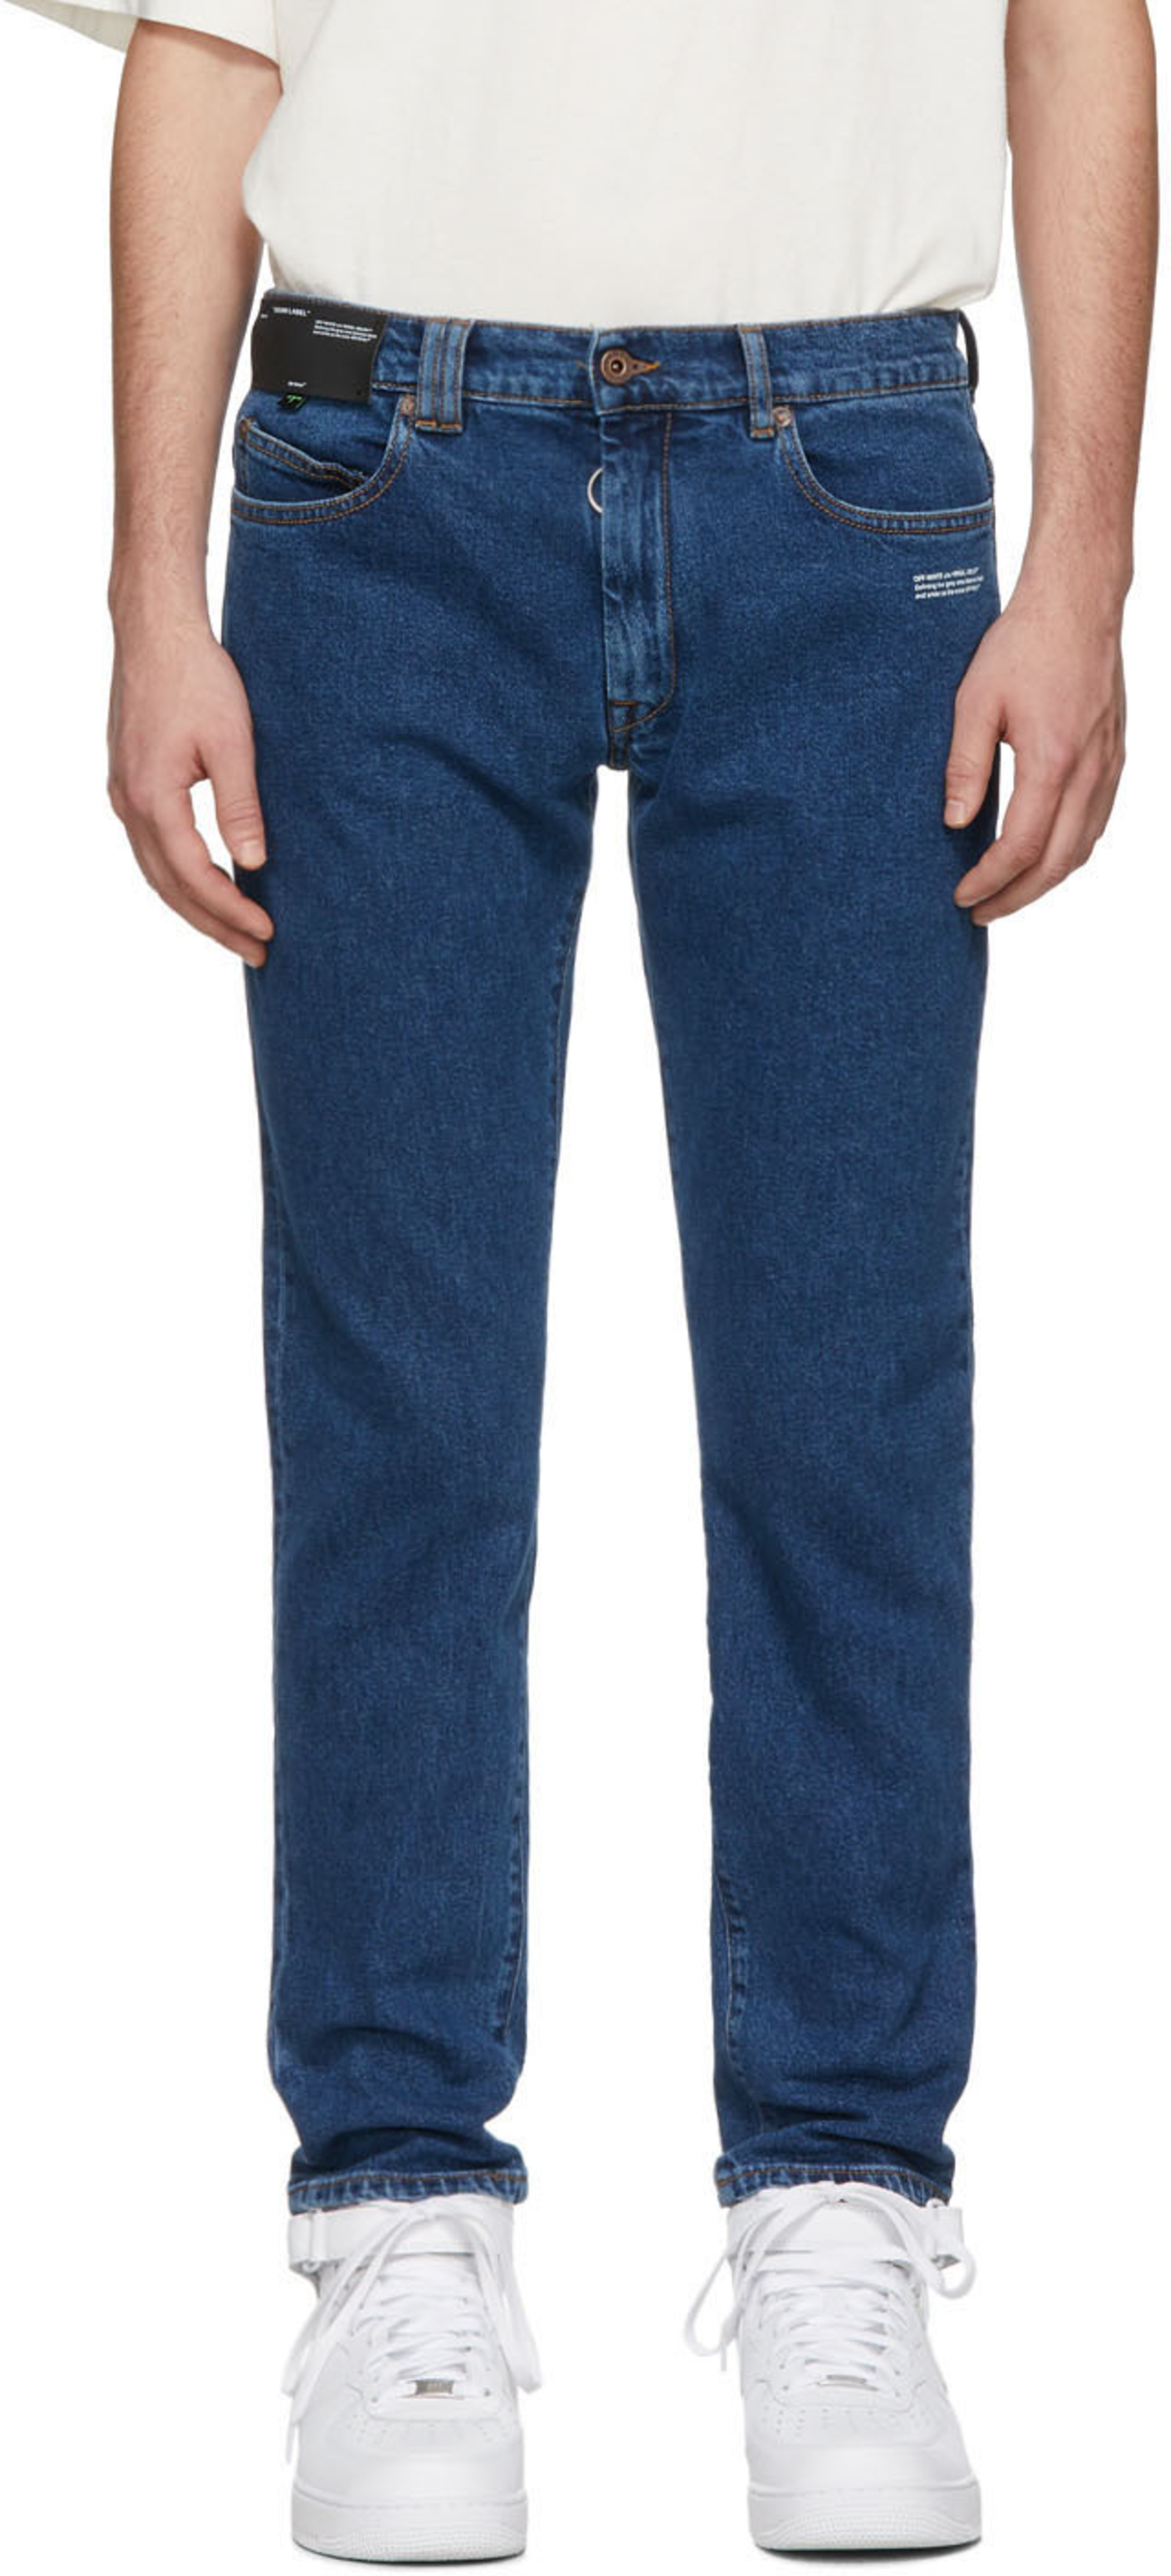 805ba6694a8 Off-white Collection pour Hommes